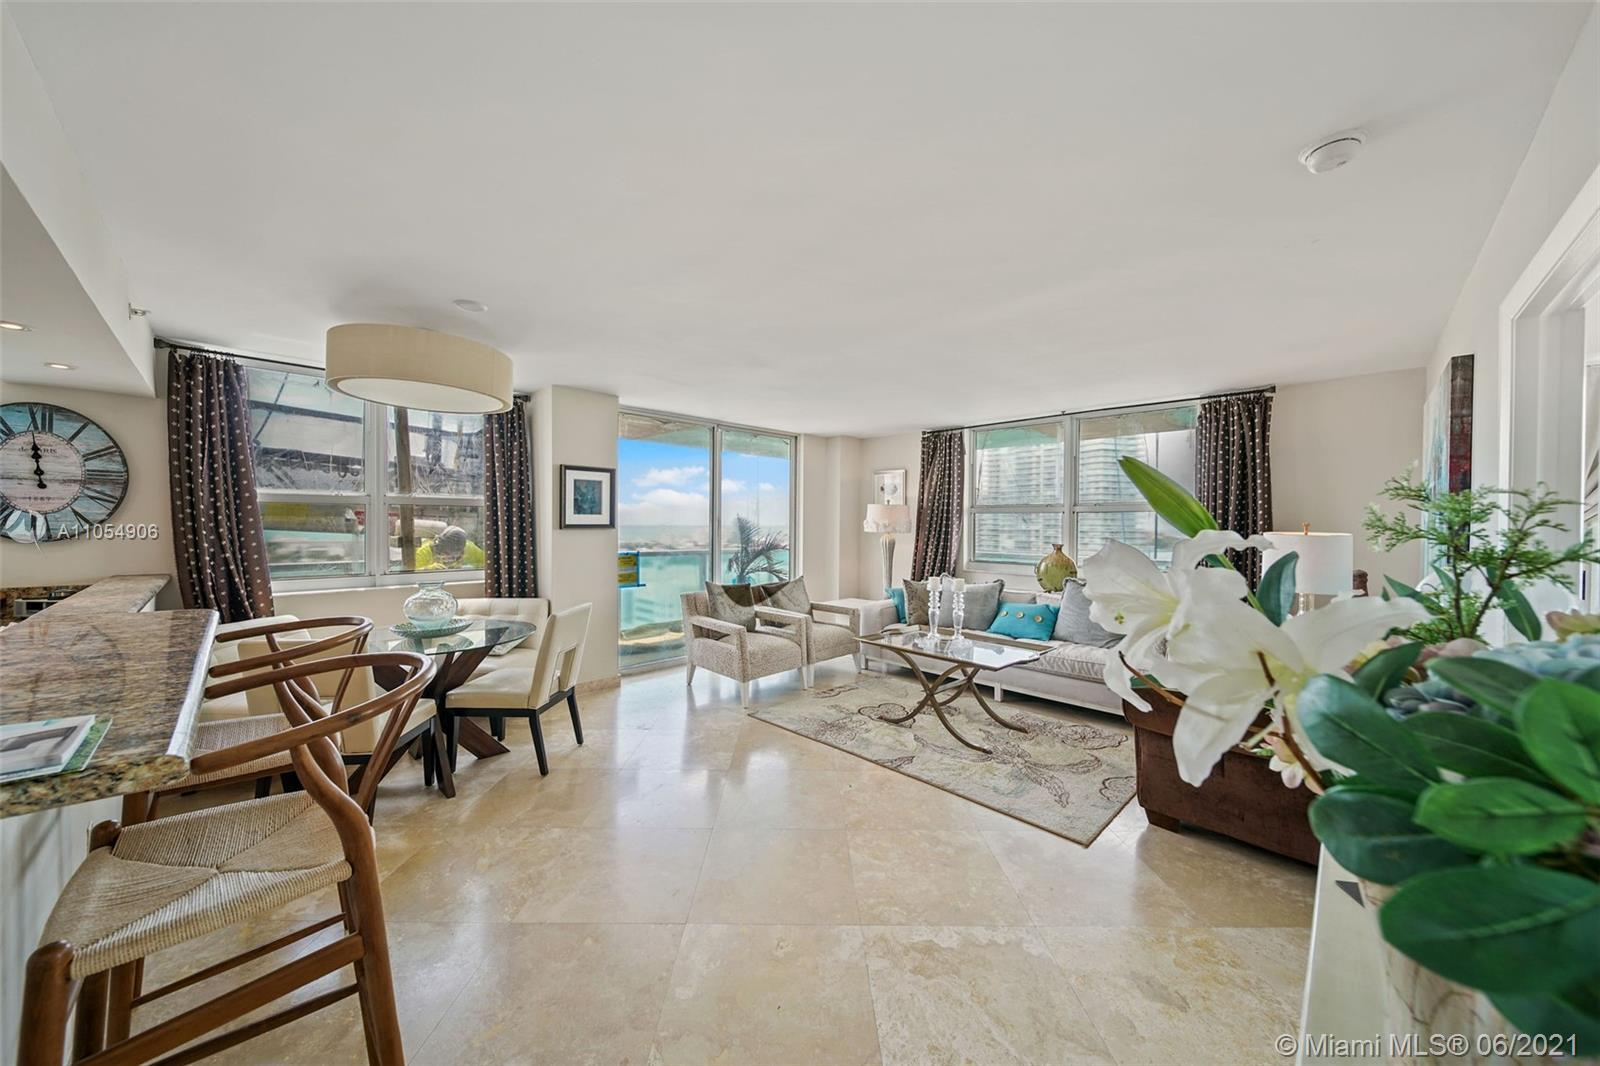 Corner Unit with wraparound balcony and extended terrace offering floor-to-ceiling glass in living r